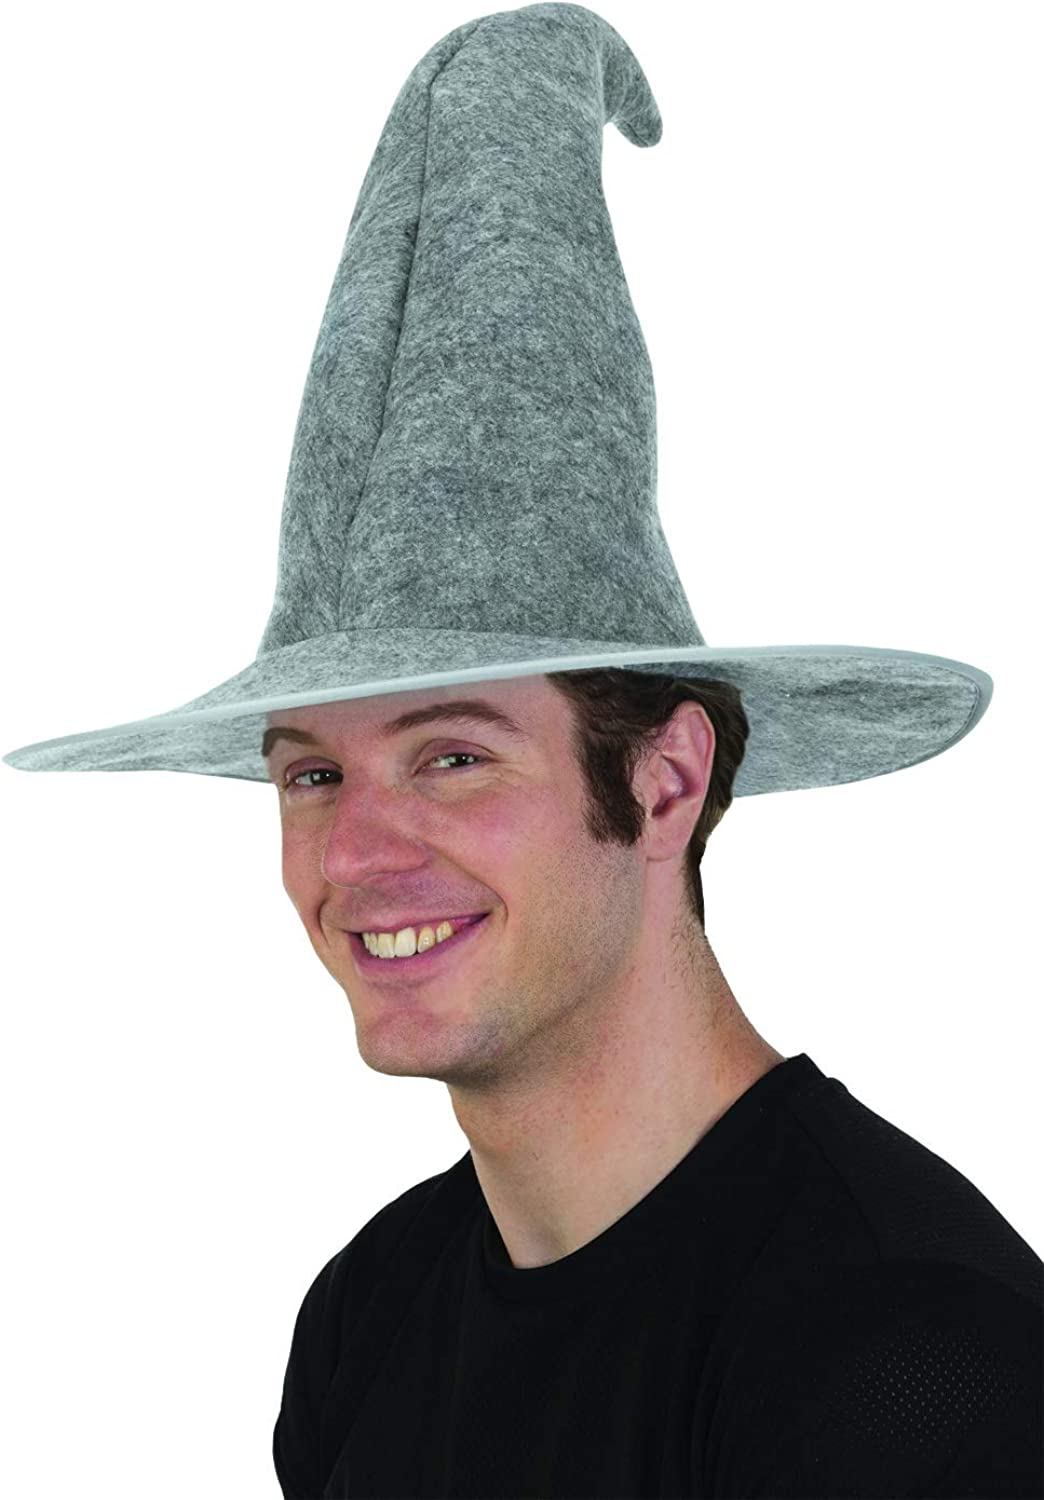 jAc Fixed price for sale Gray List price Wizard Hat Costume Adult Accessory